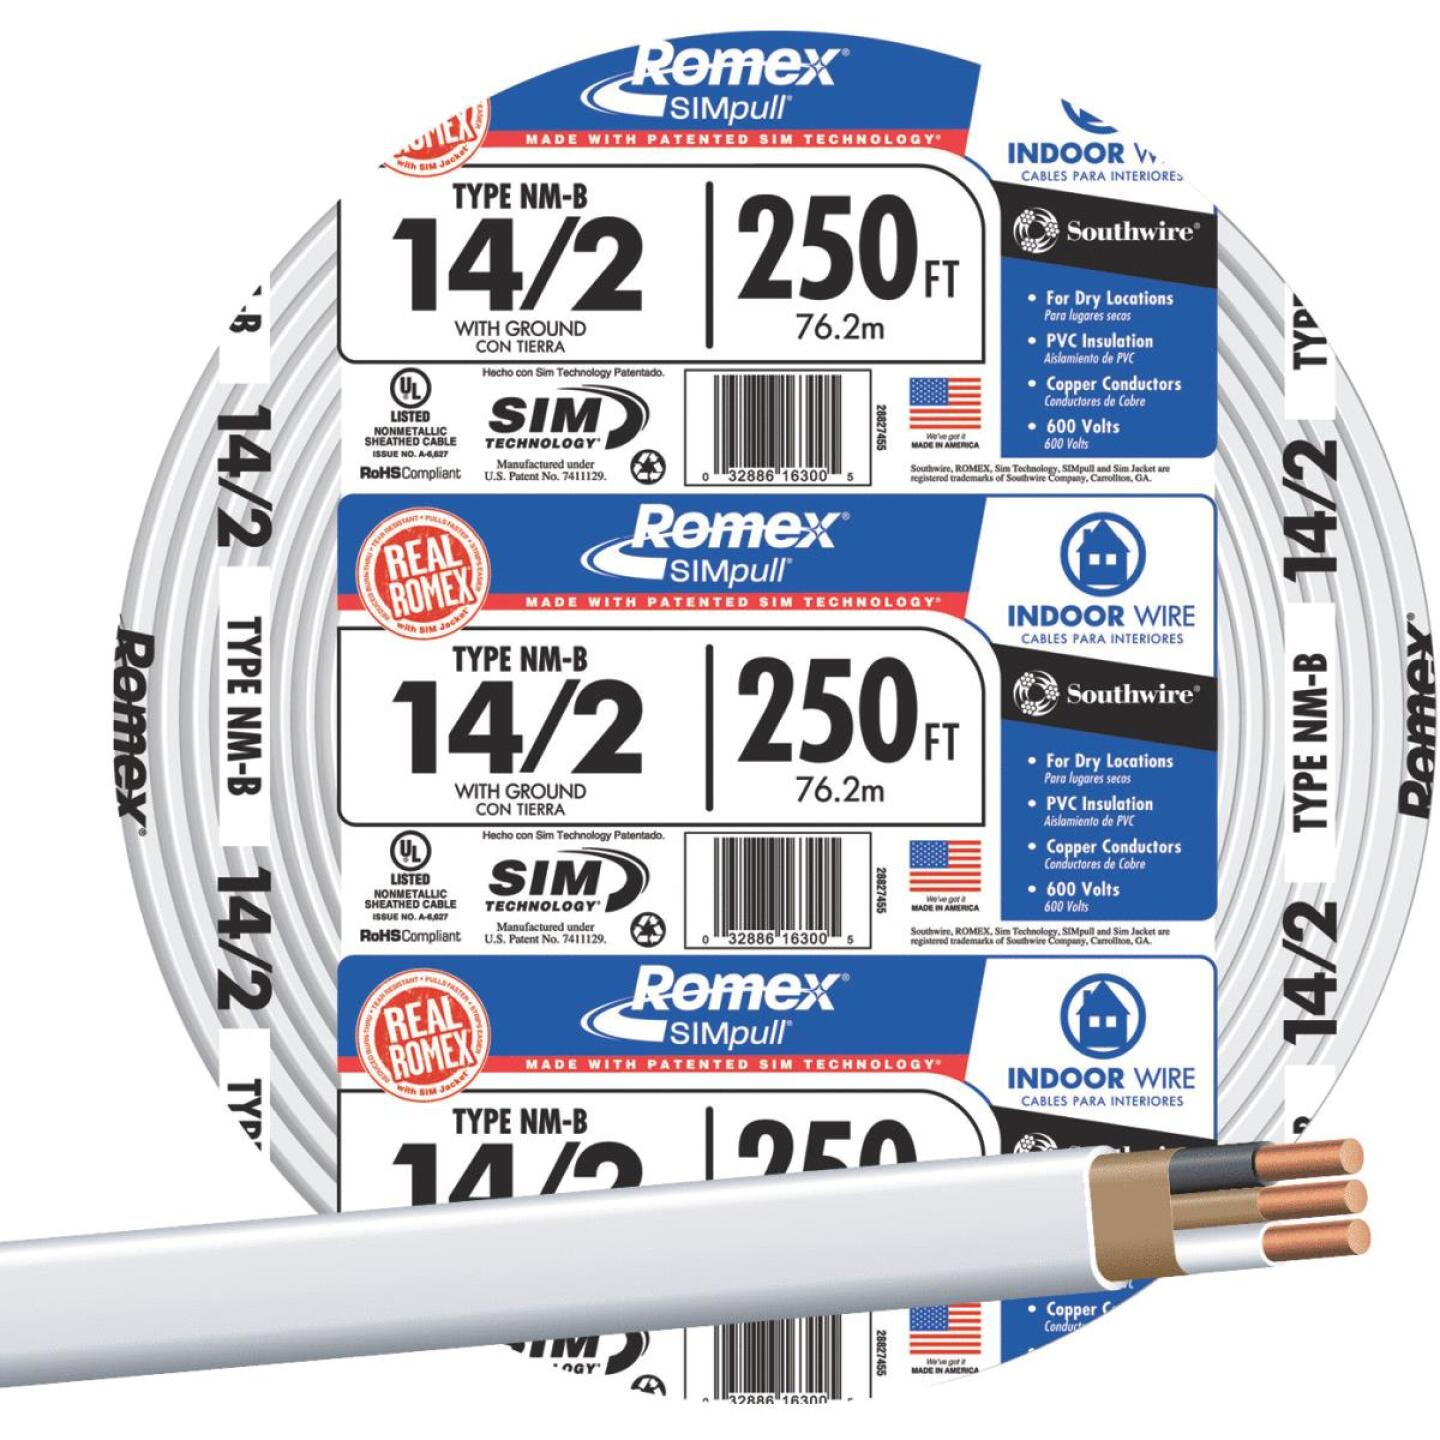 Romex 250 Ft. 14-2 Solid White NMW/G Wire Image 1